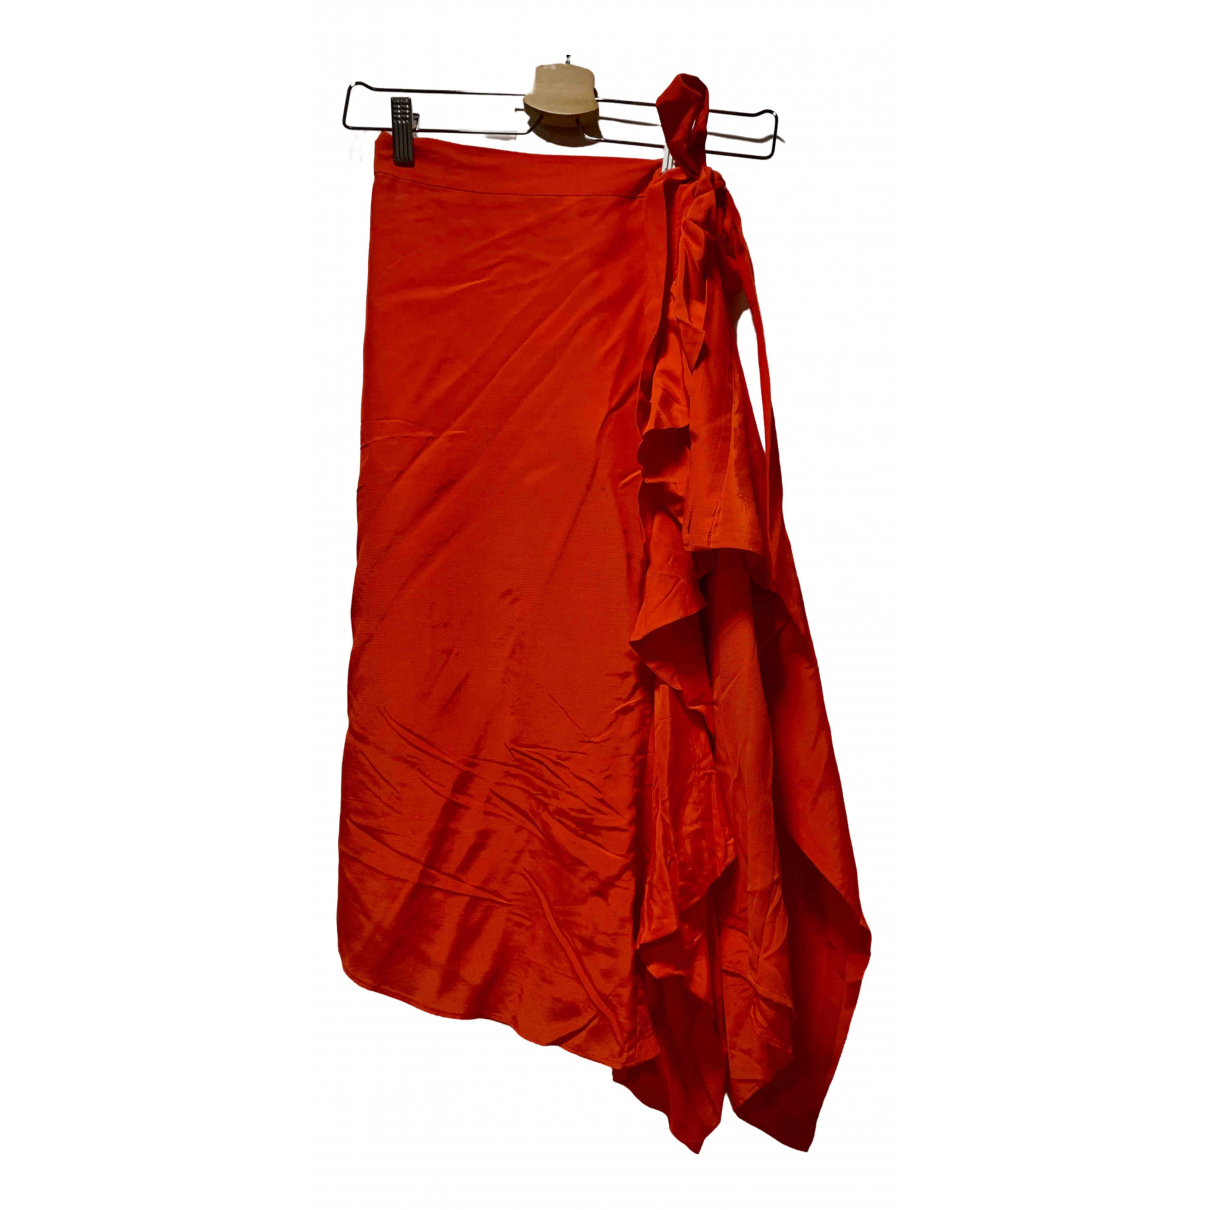 & Other Stories - Jupe   pour femme - rouge